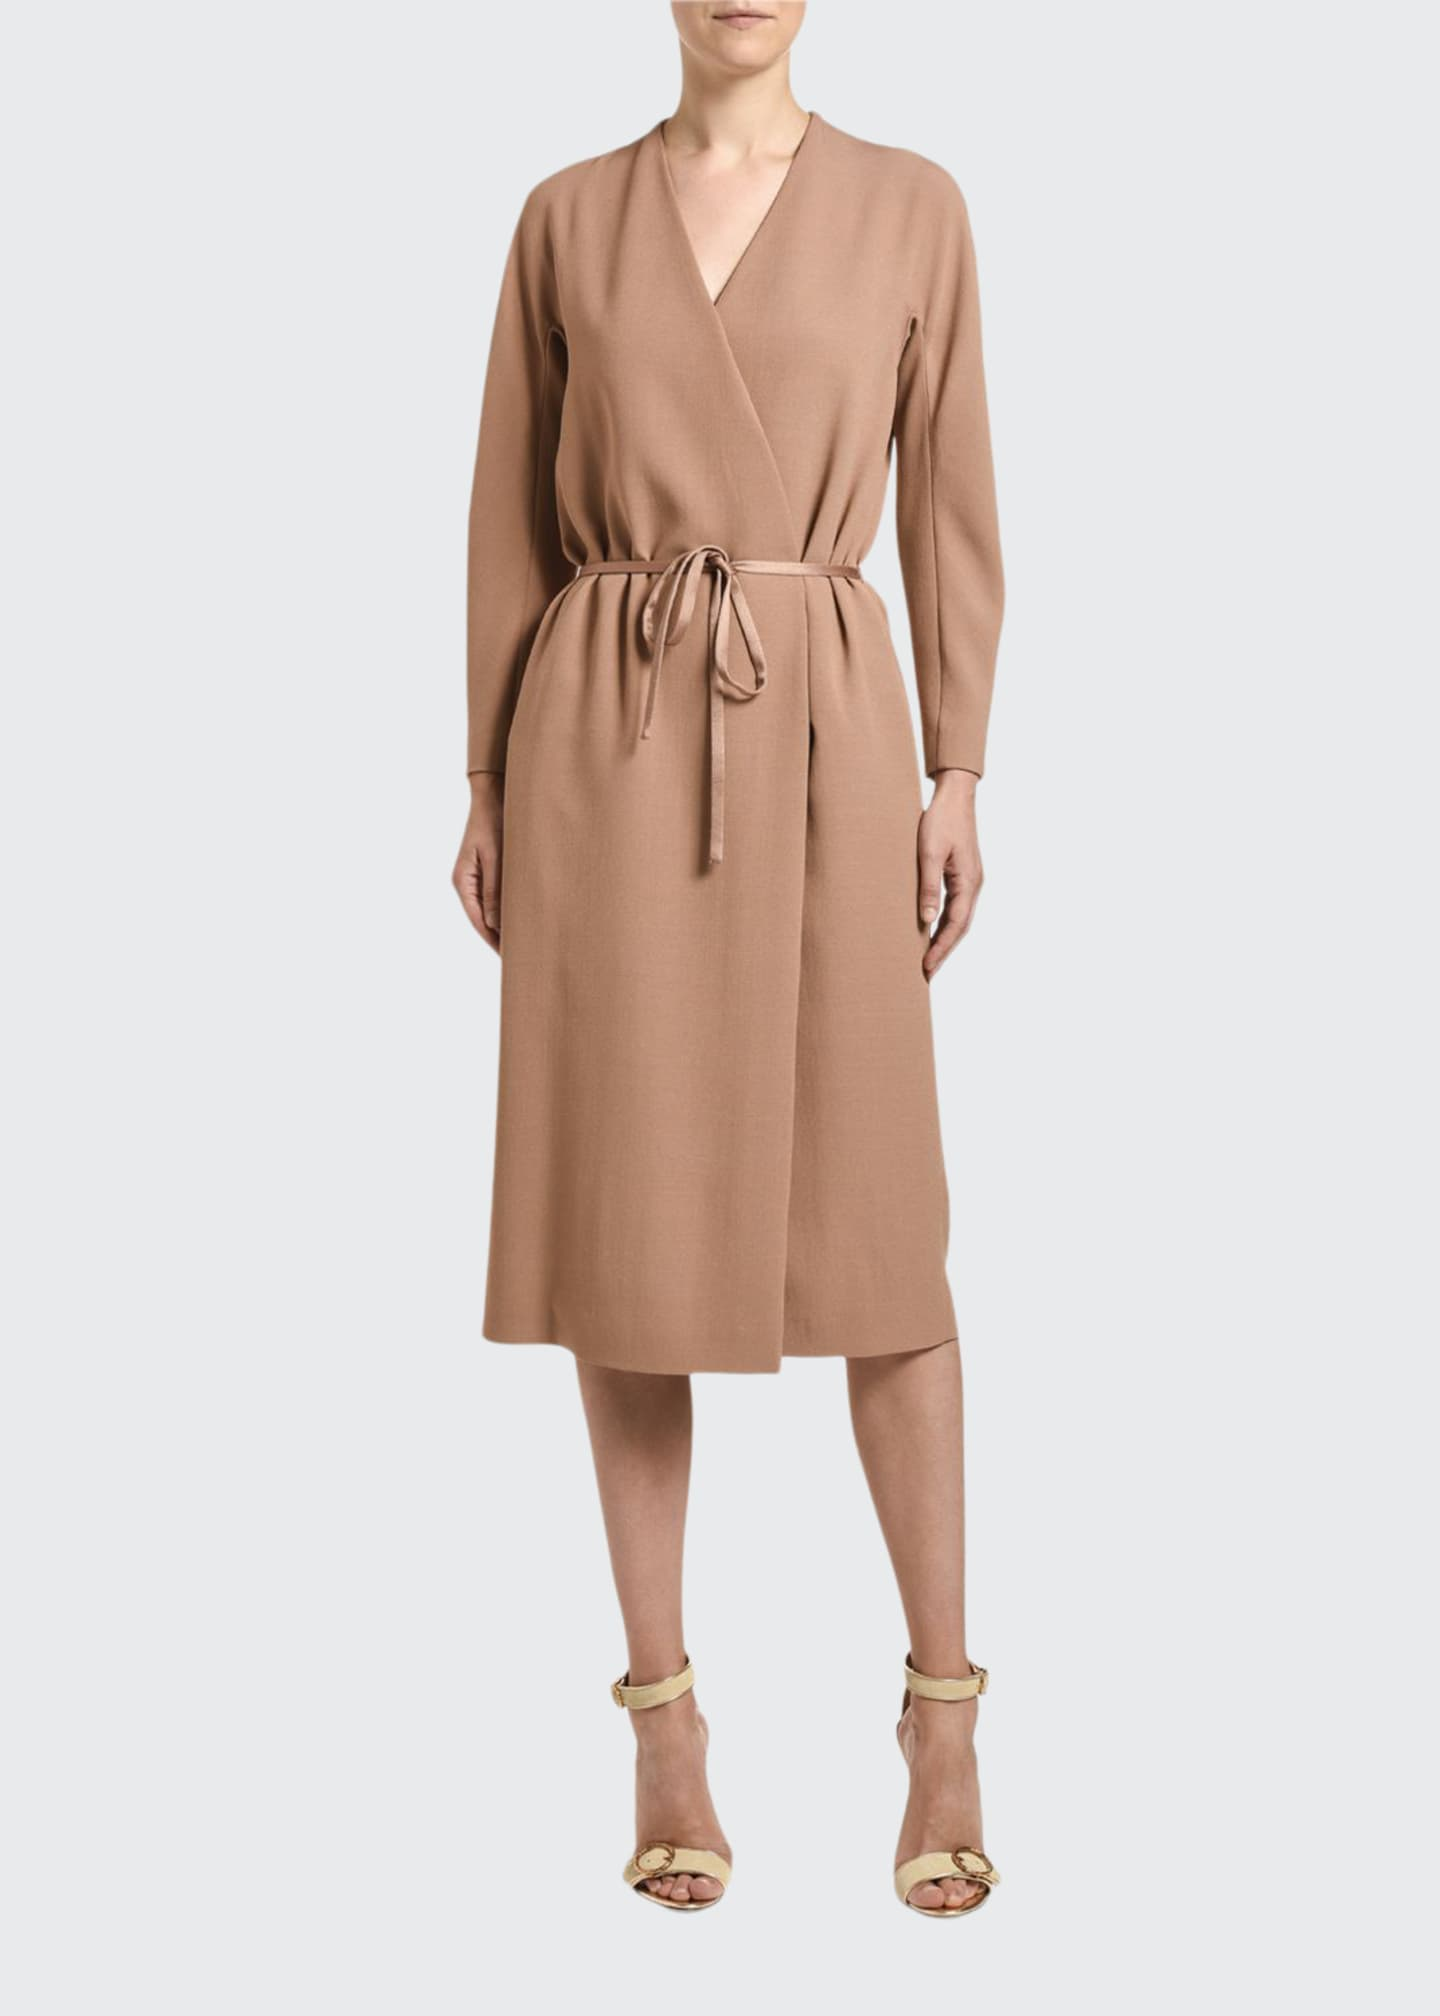 Agnona Cady Wrap Dress